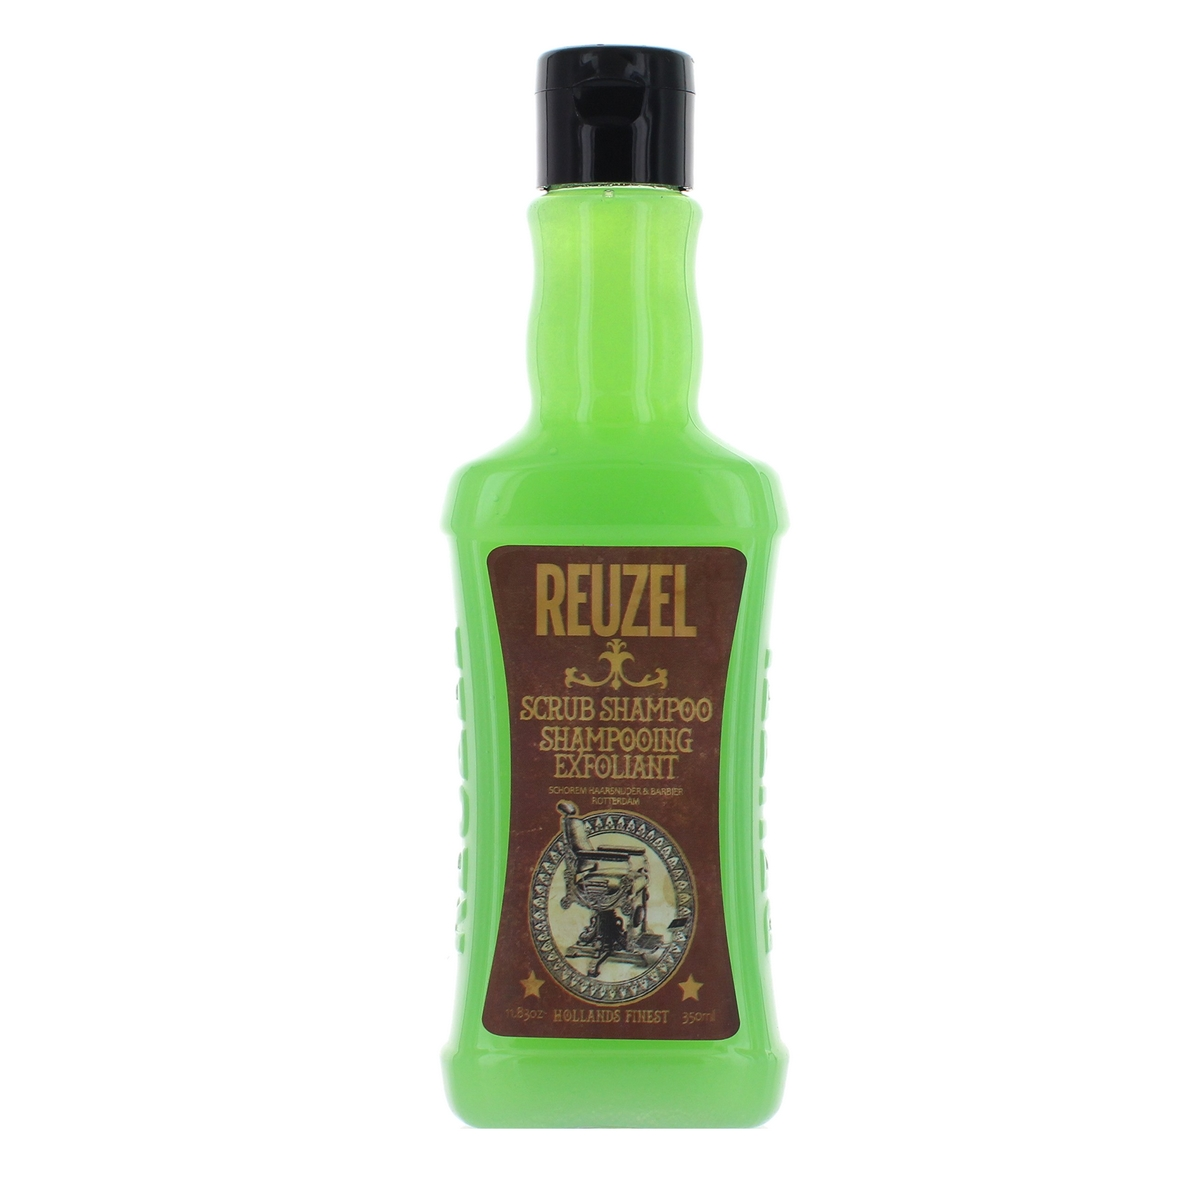 Giầu Gội Reuzel Scrub Shampoo Mens Hair Care 11.83oz - 350g